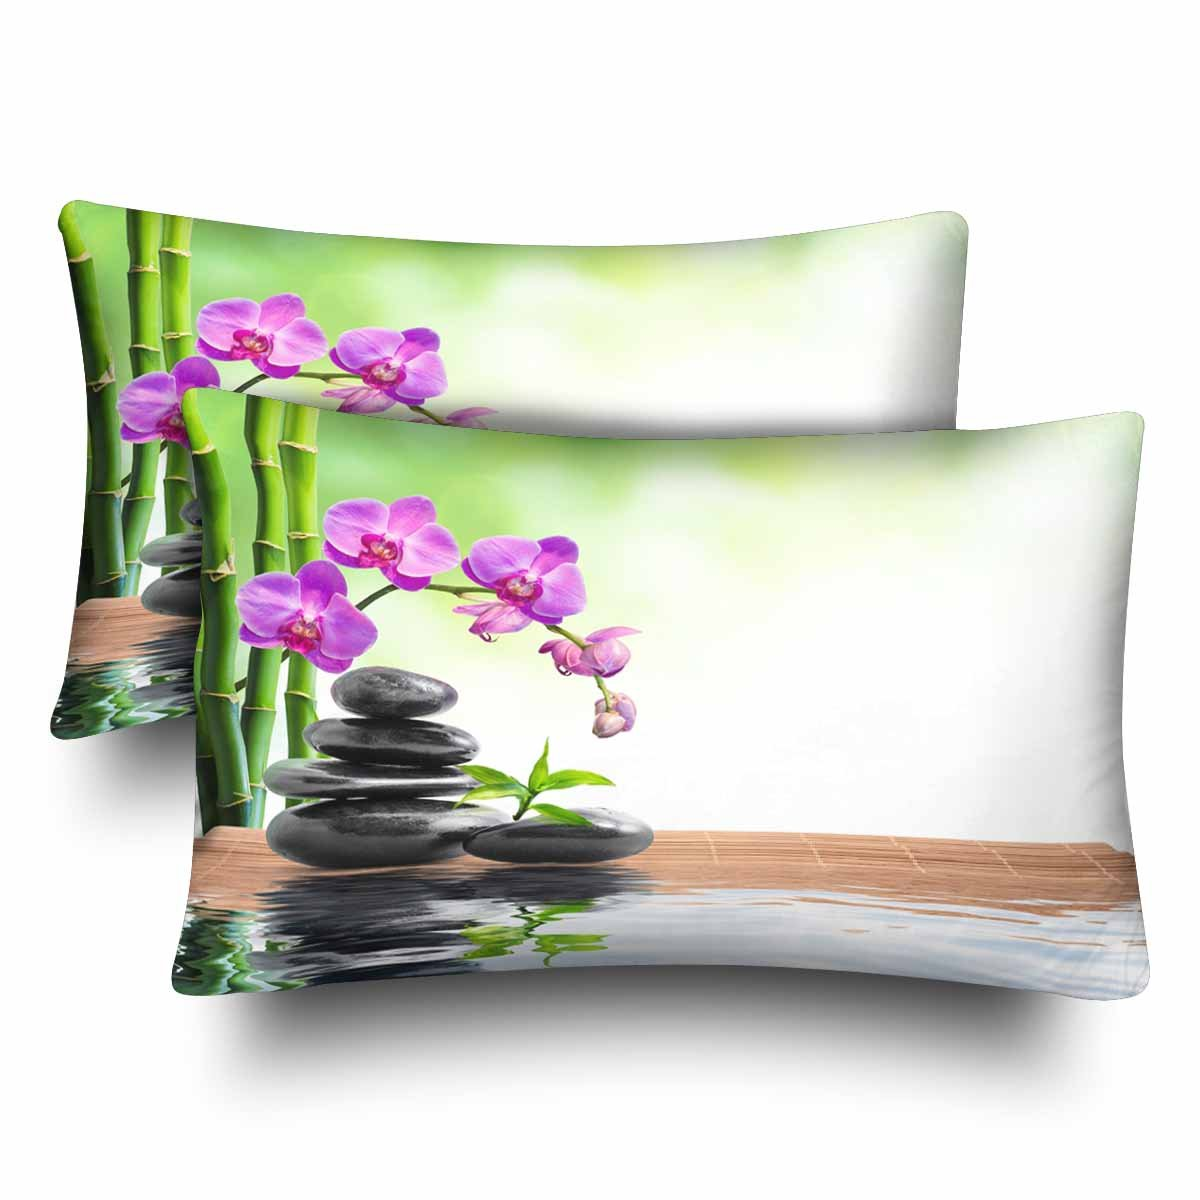 InterestPrint Spa Bamboo Orchids Water Pillow Cases Pillowcase Queen Size 20x30 Set of 2, Rectangle Pillow Covers Protector for Home Couch Sofa Bedroom Decoration